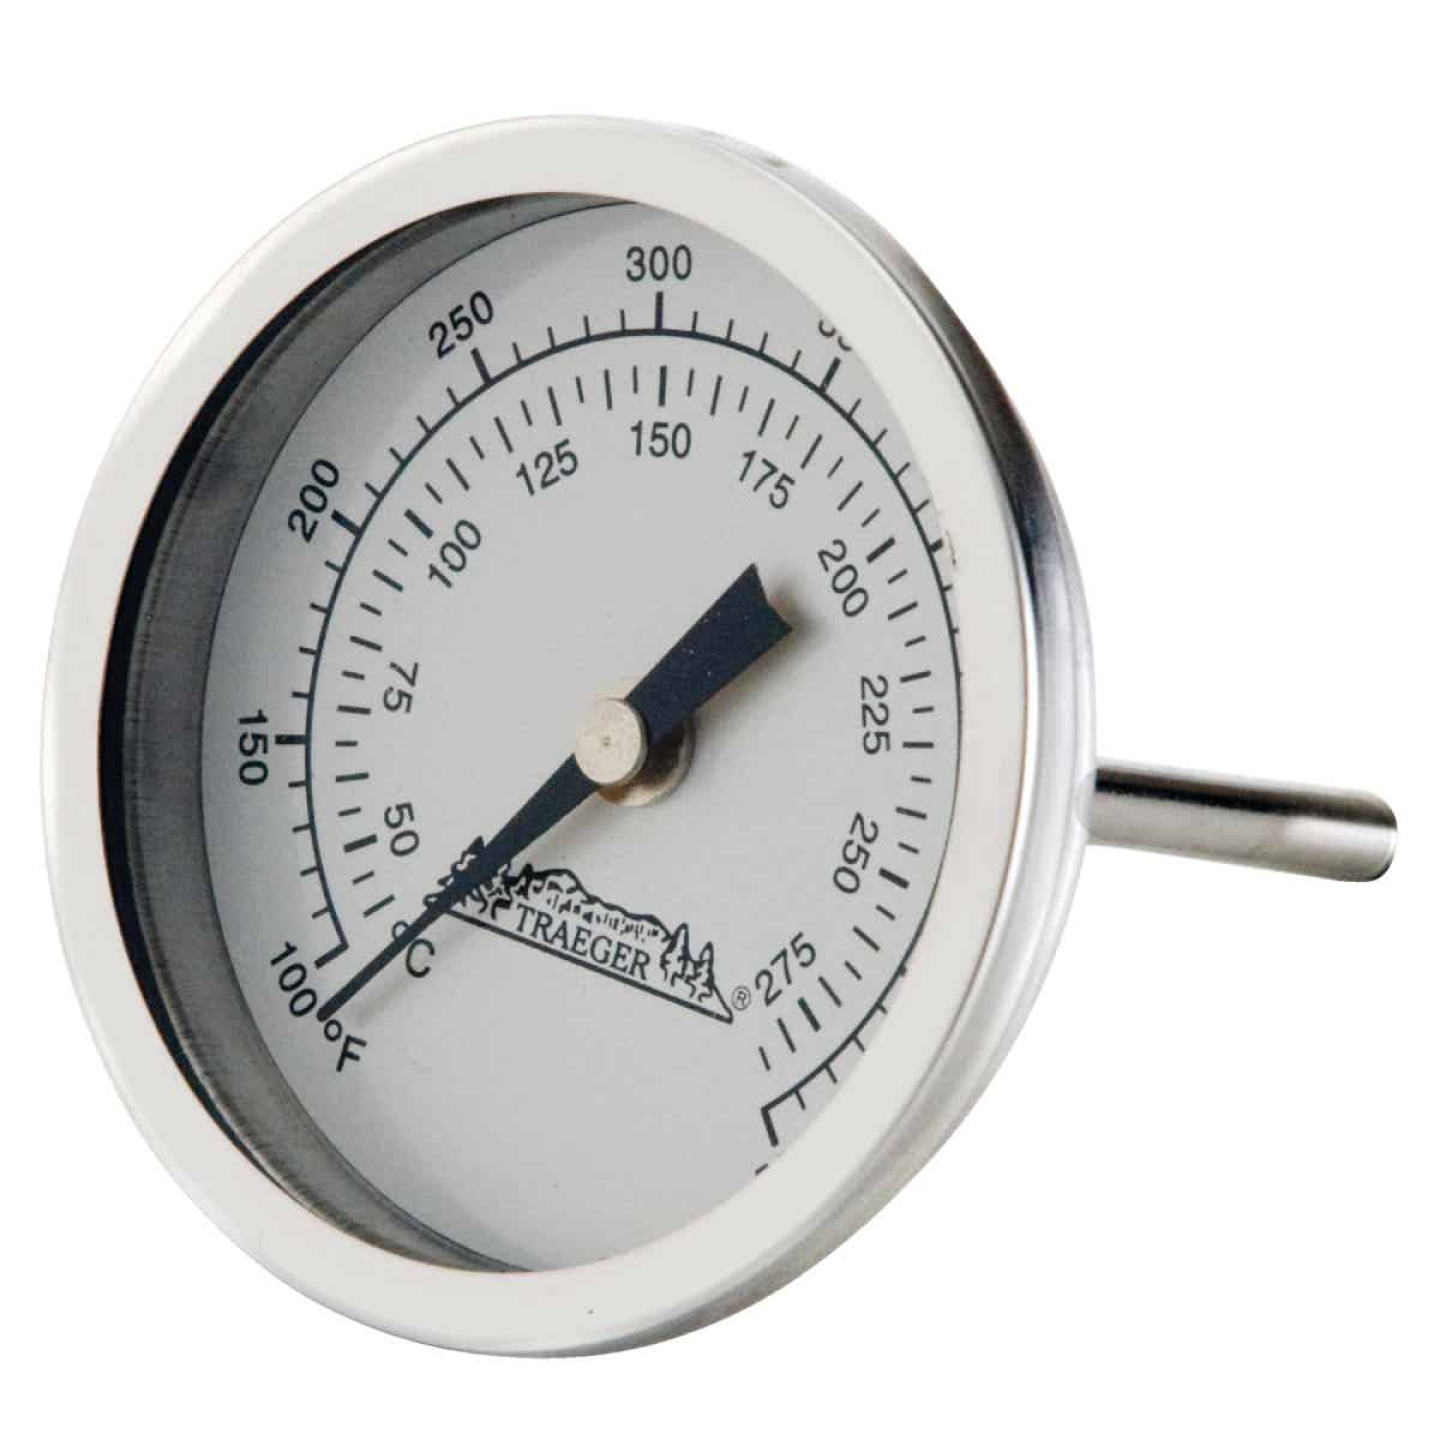 Traeger Analog 3-1/2 In. Stainless Steel Dome Thermometer Image 1